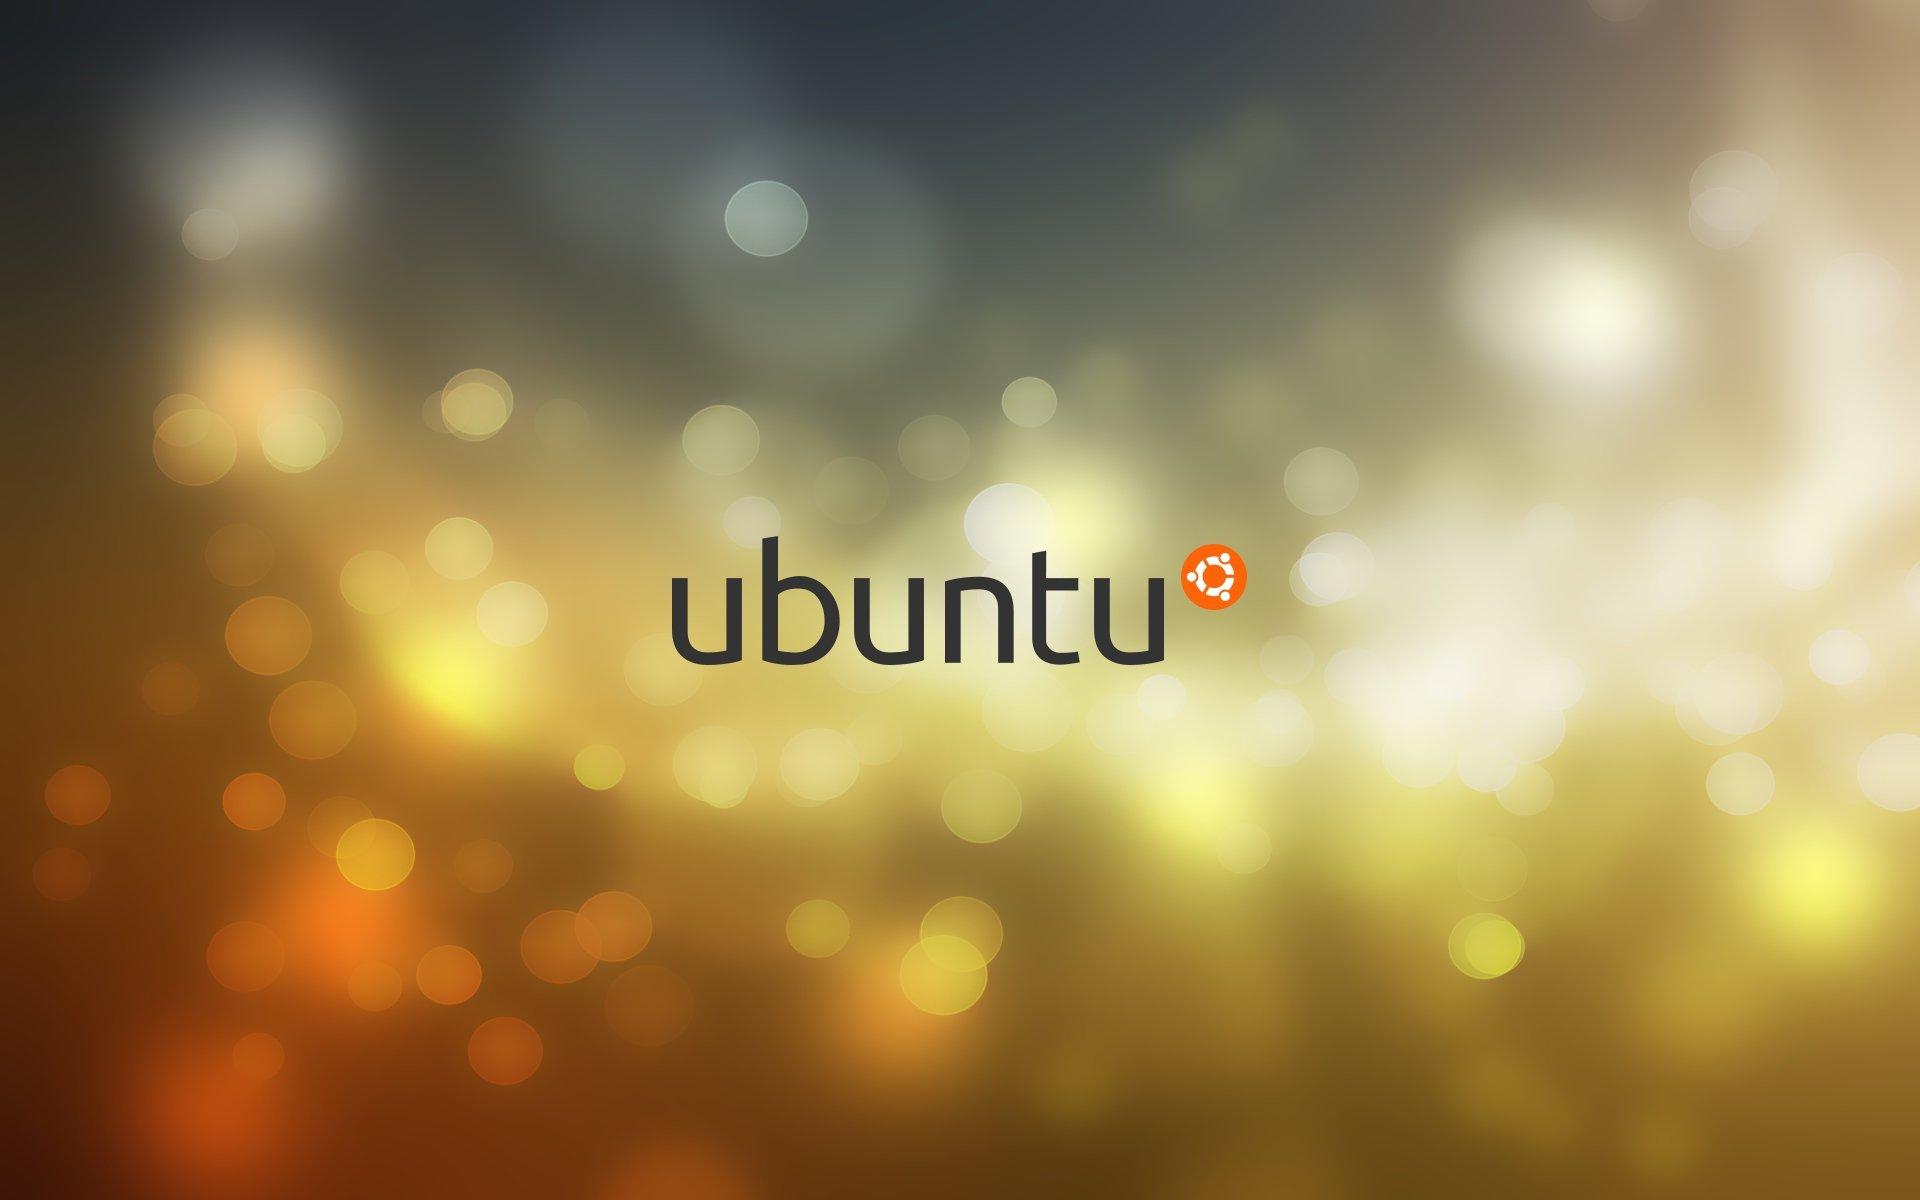 Ubuntu De Lumiere HD Wallpaper Theme Bin   Customization HD 1920x1200